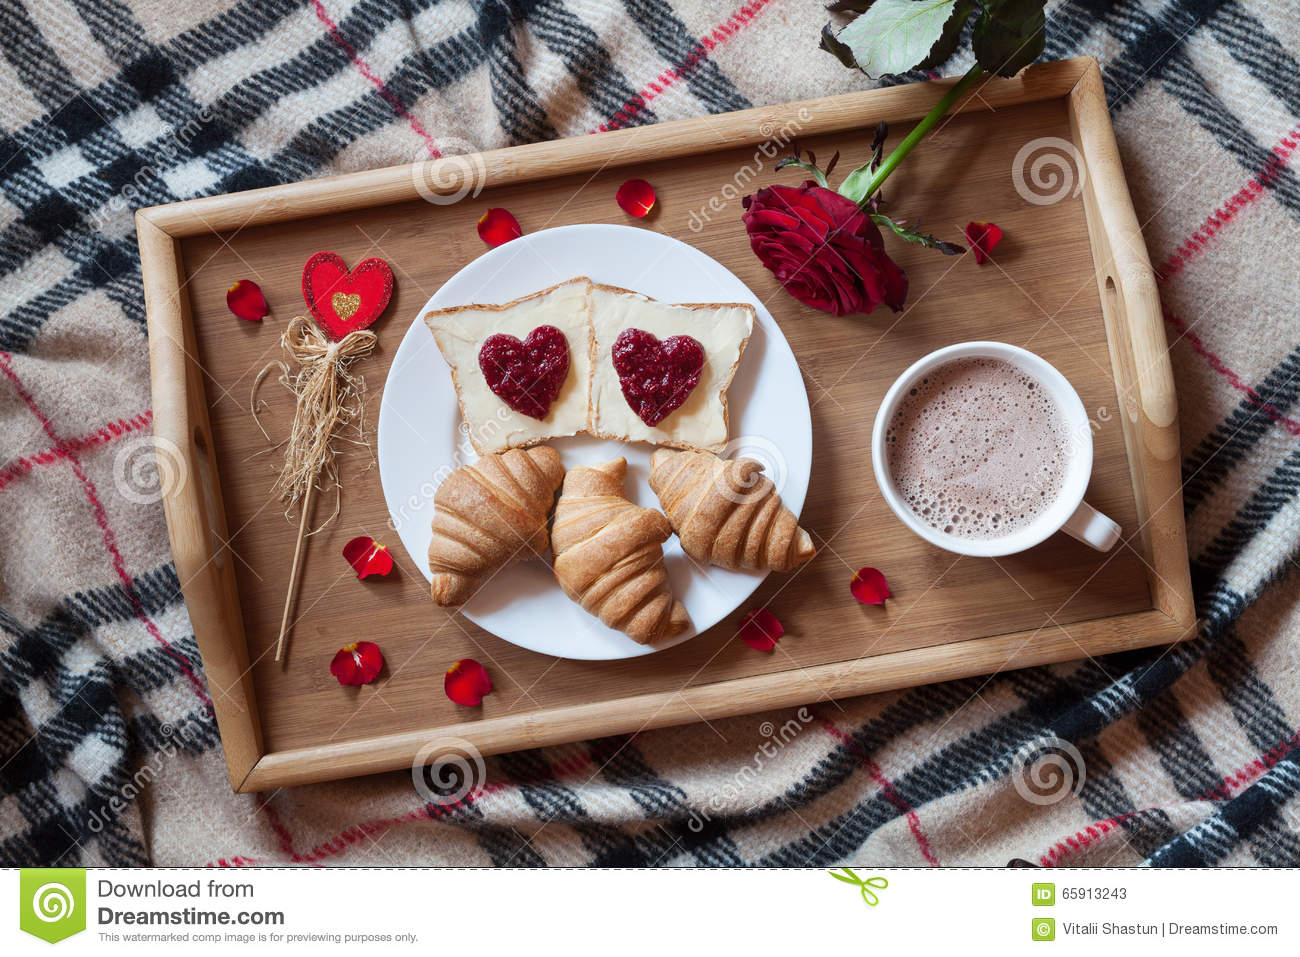 Romantic Breakfast In Bed For Valentines Day Toasts With